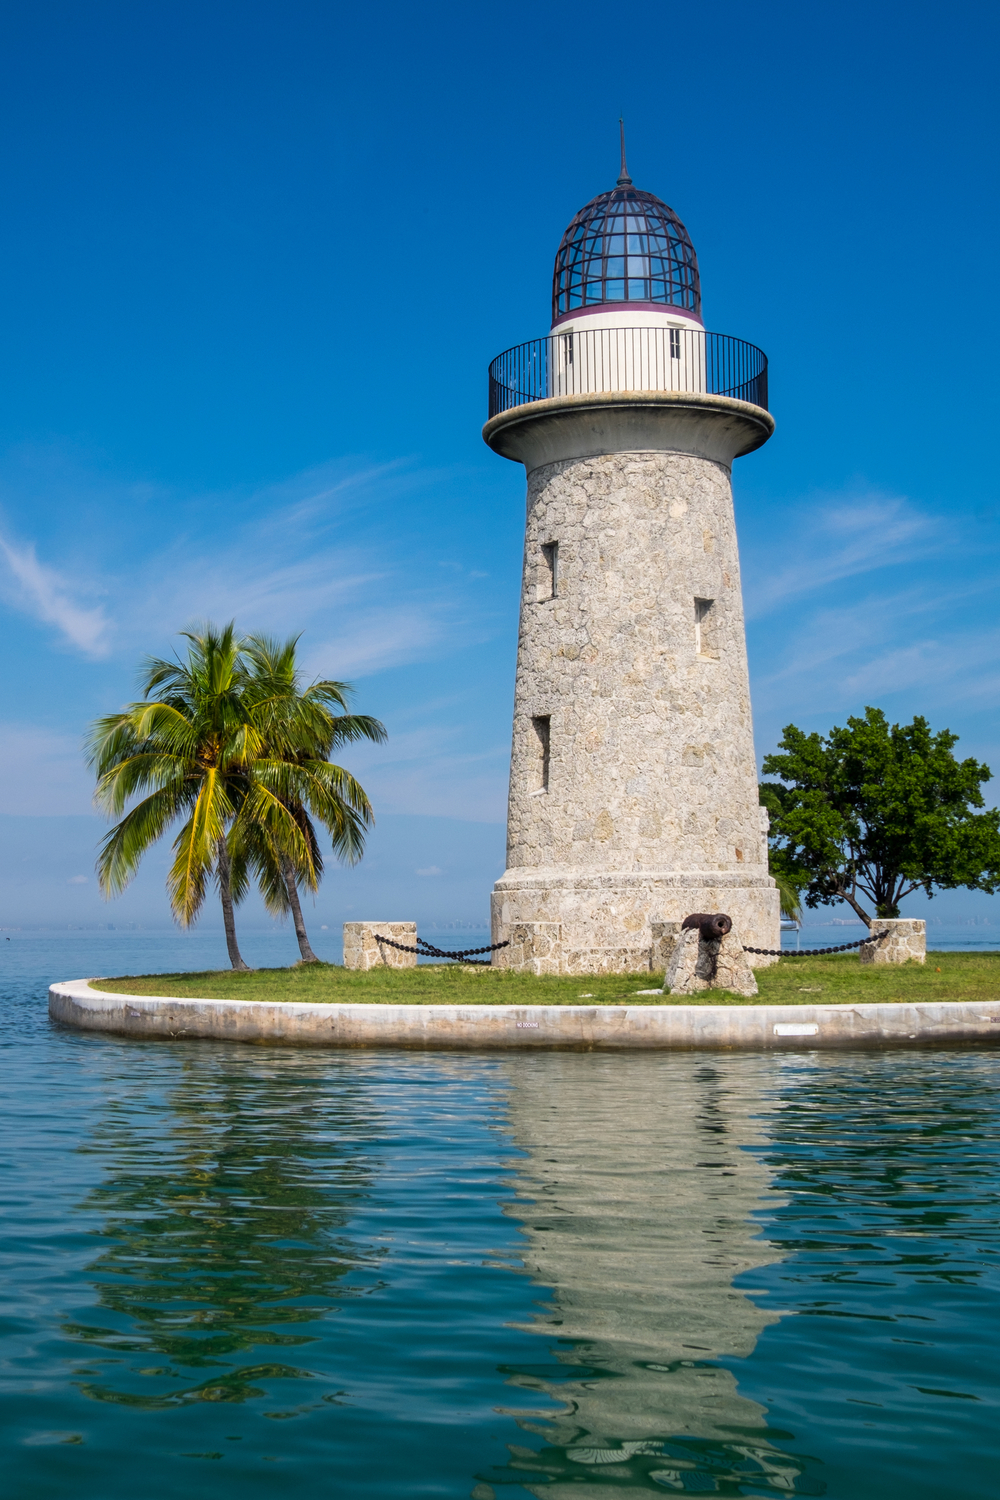 A view of the lighthouse.